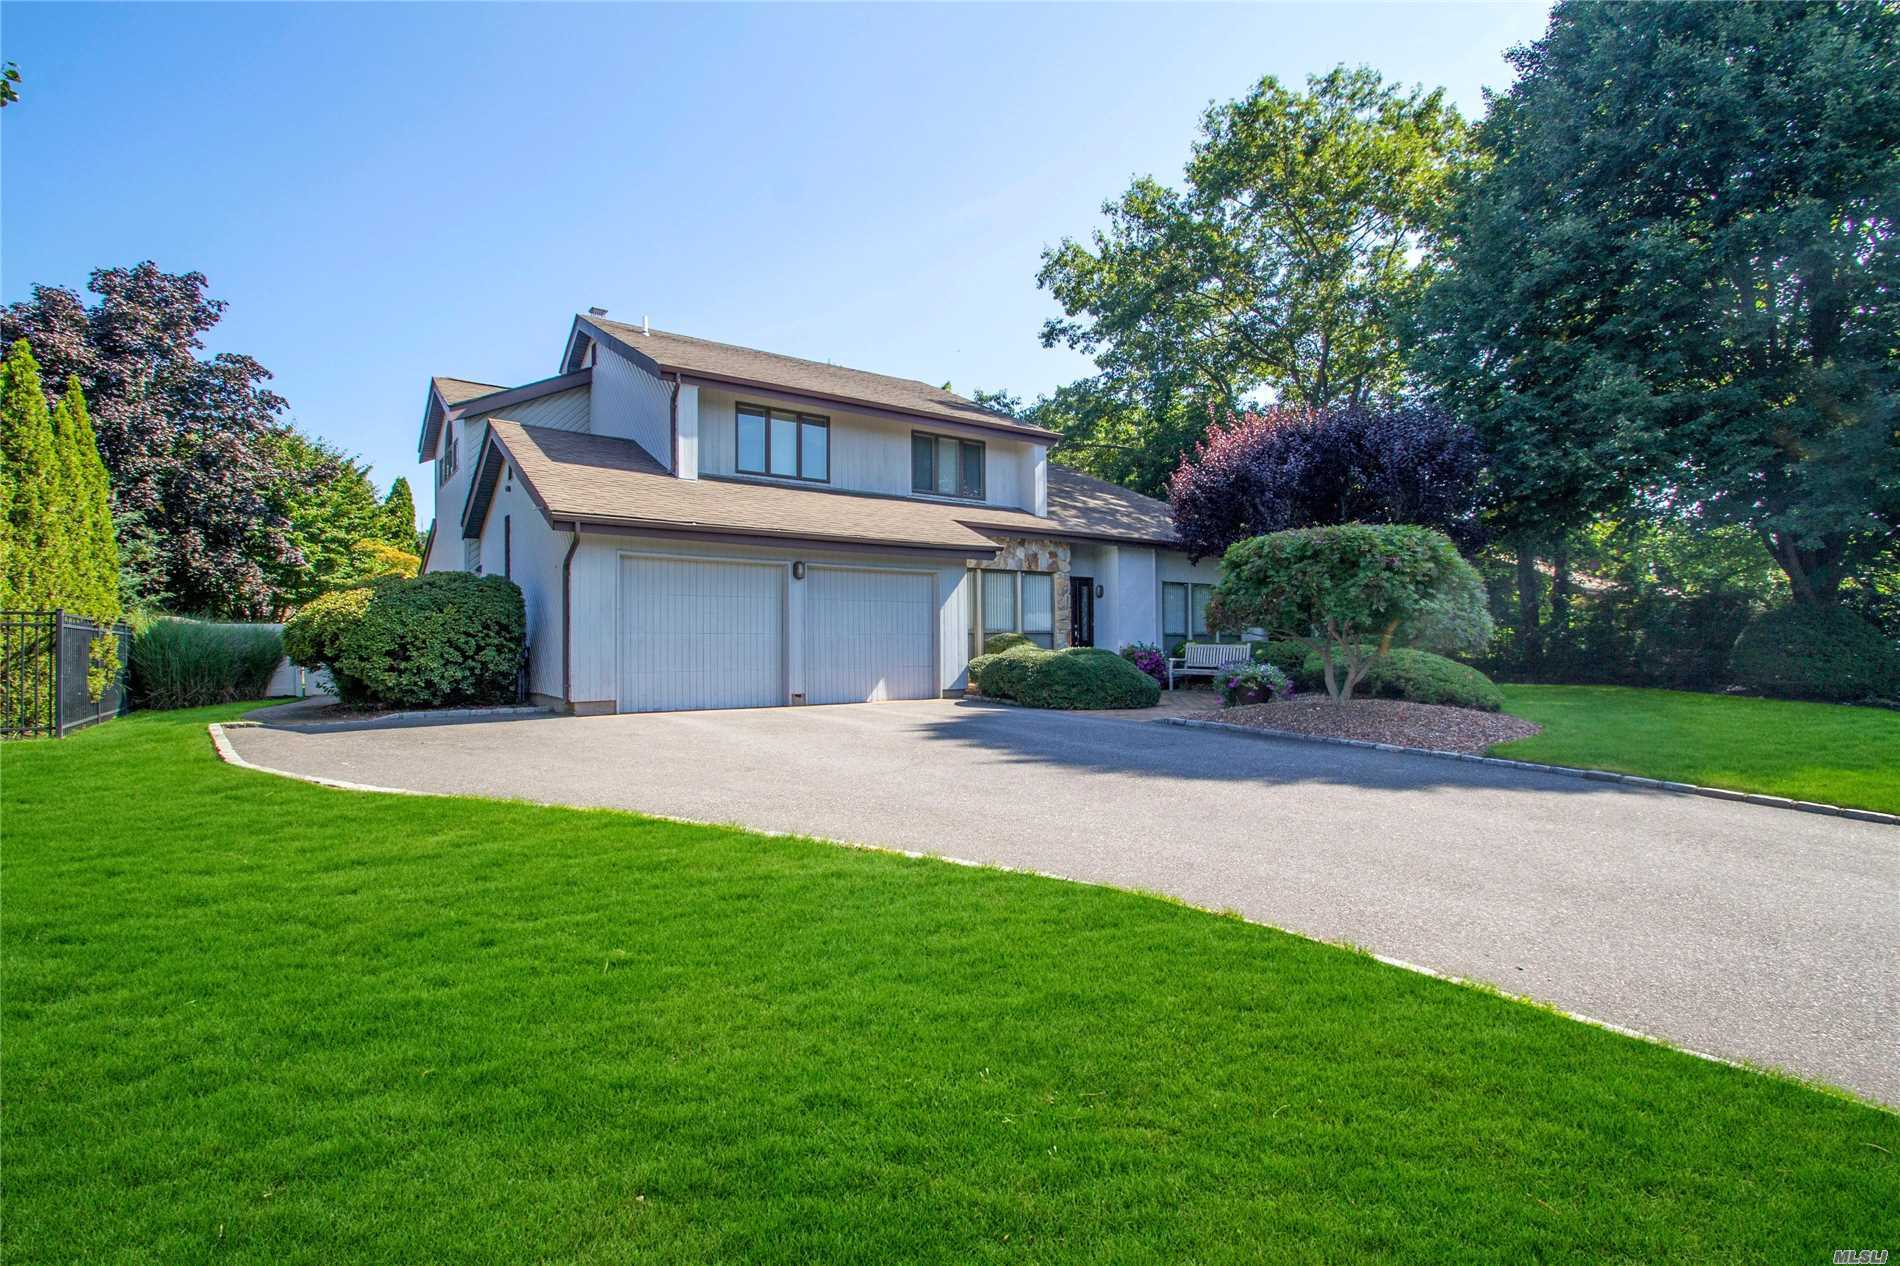 Photo of home for sale at 8 Barbera Rd, Commack NY